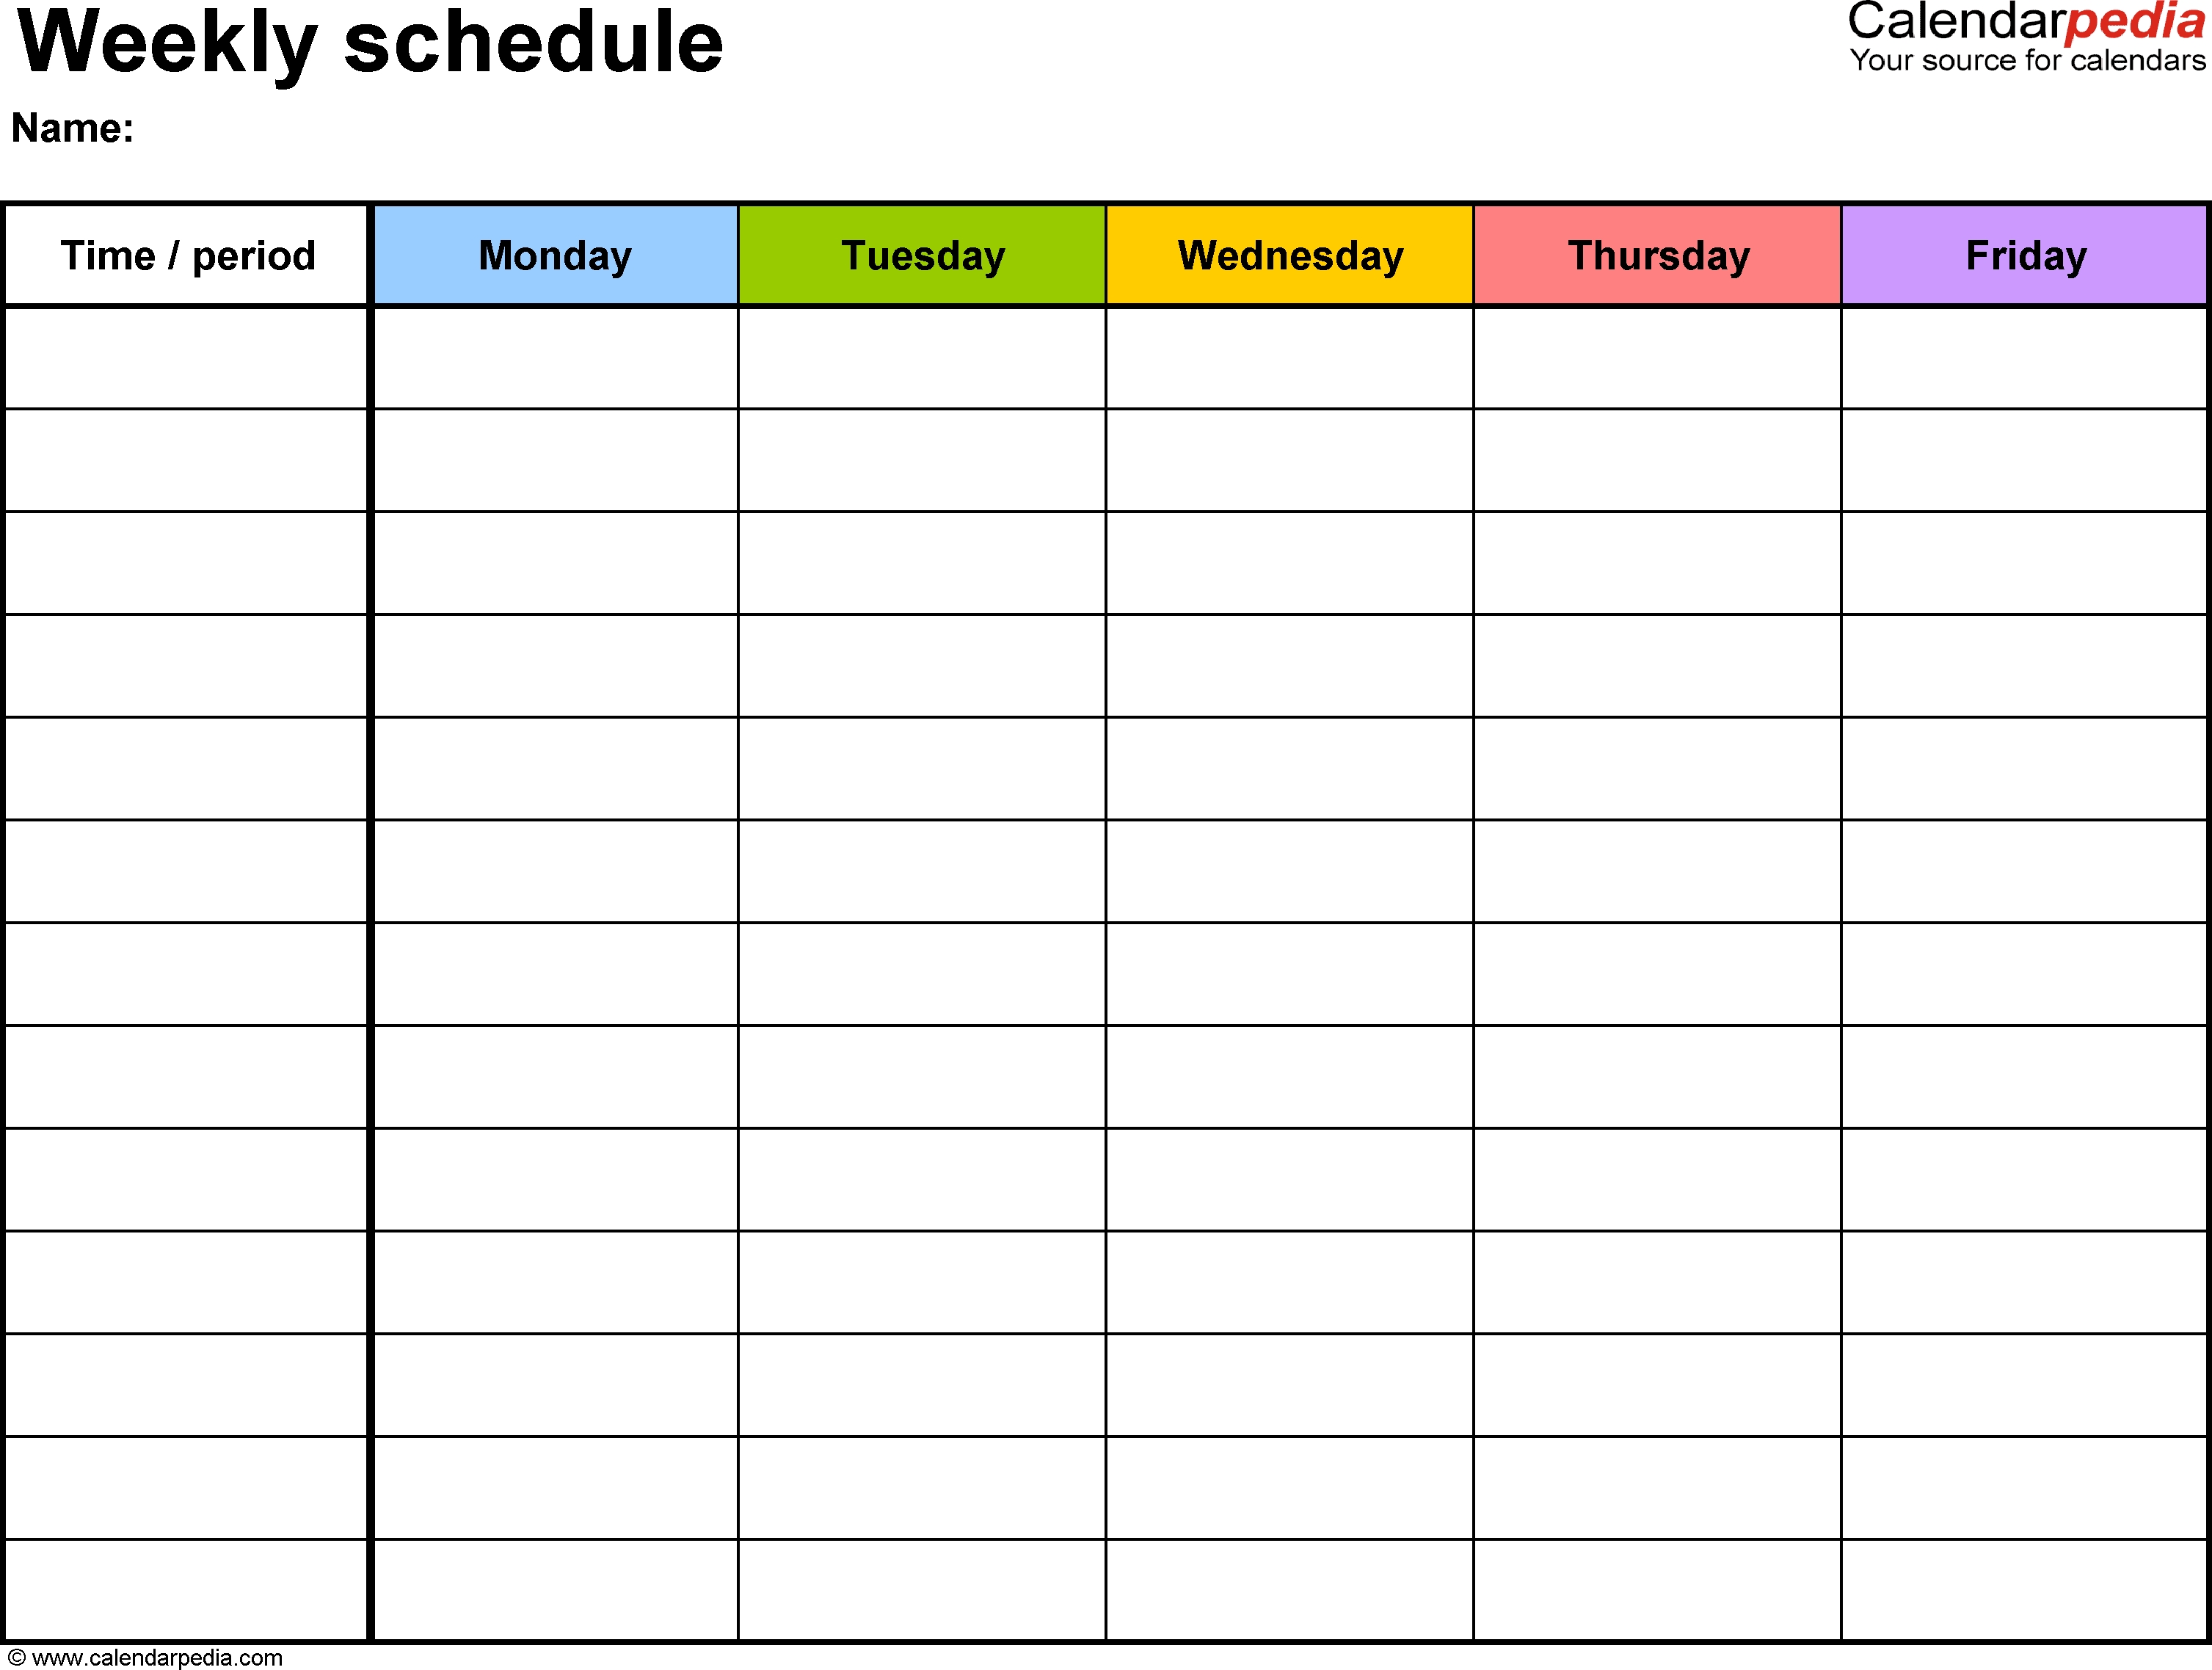 Free Weekly Schedule Templates For Word - 18 Templates  Monday Through Friday Schedule Template Free